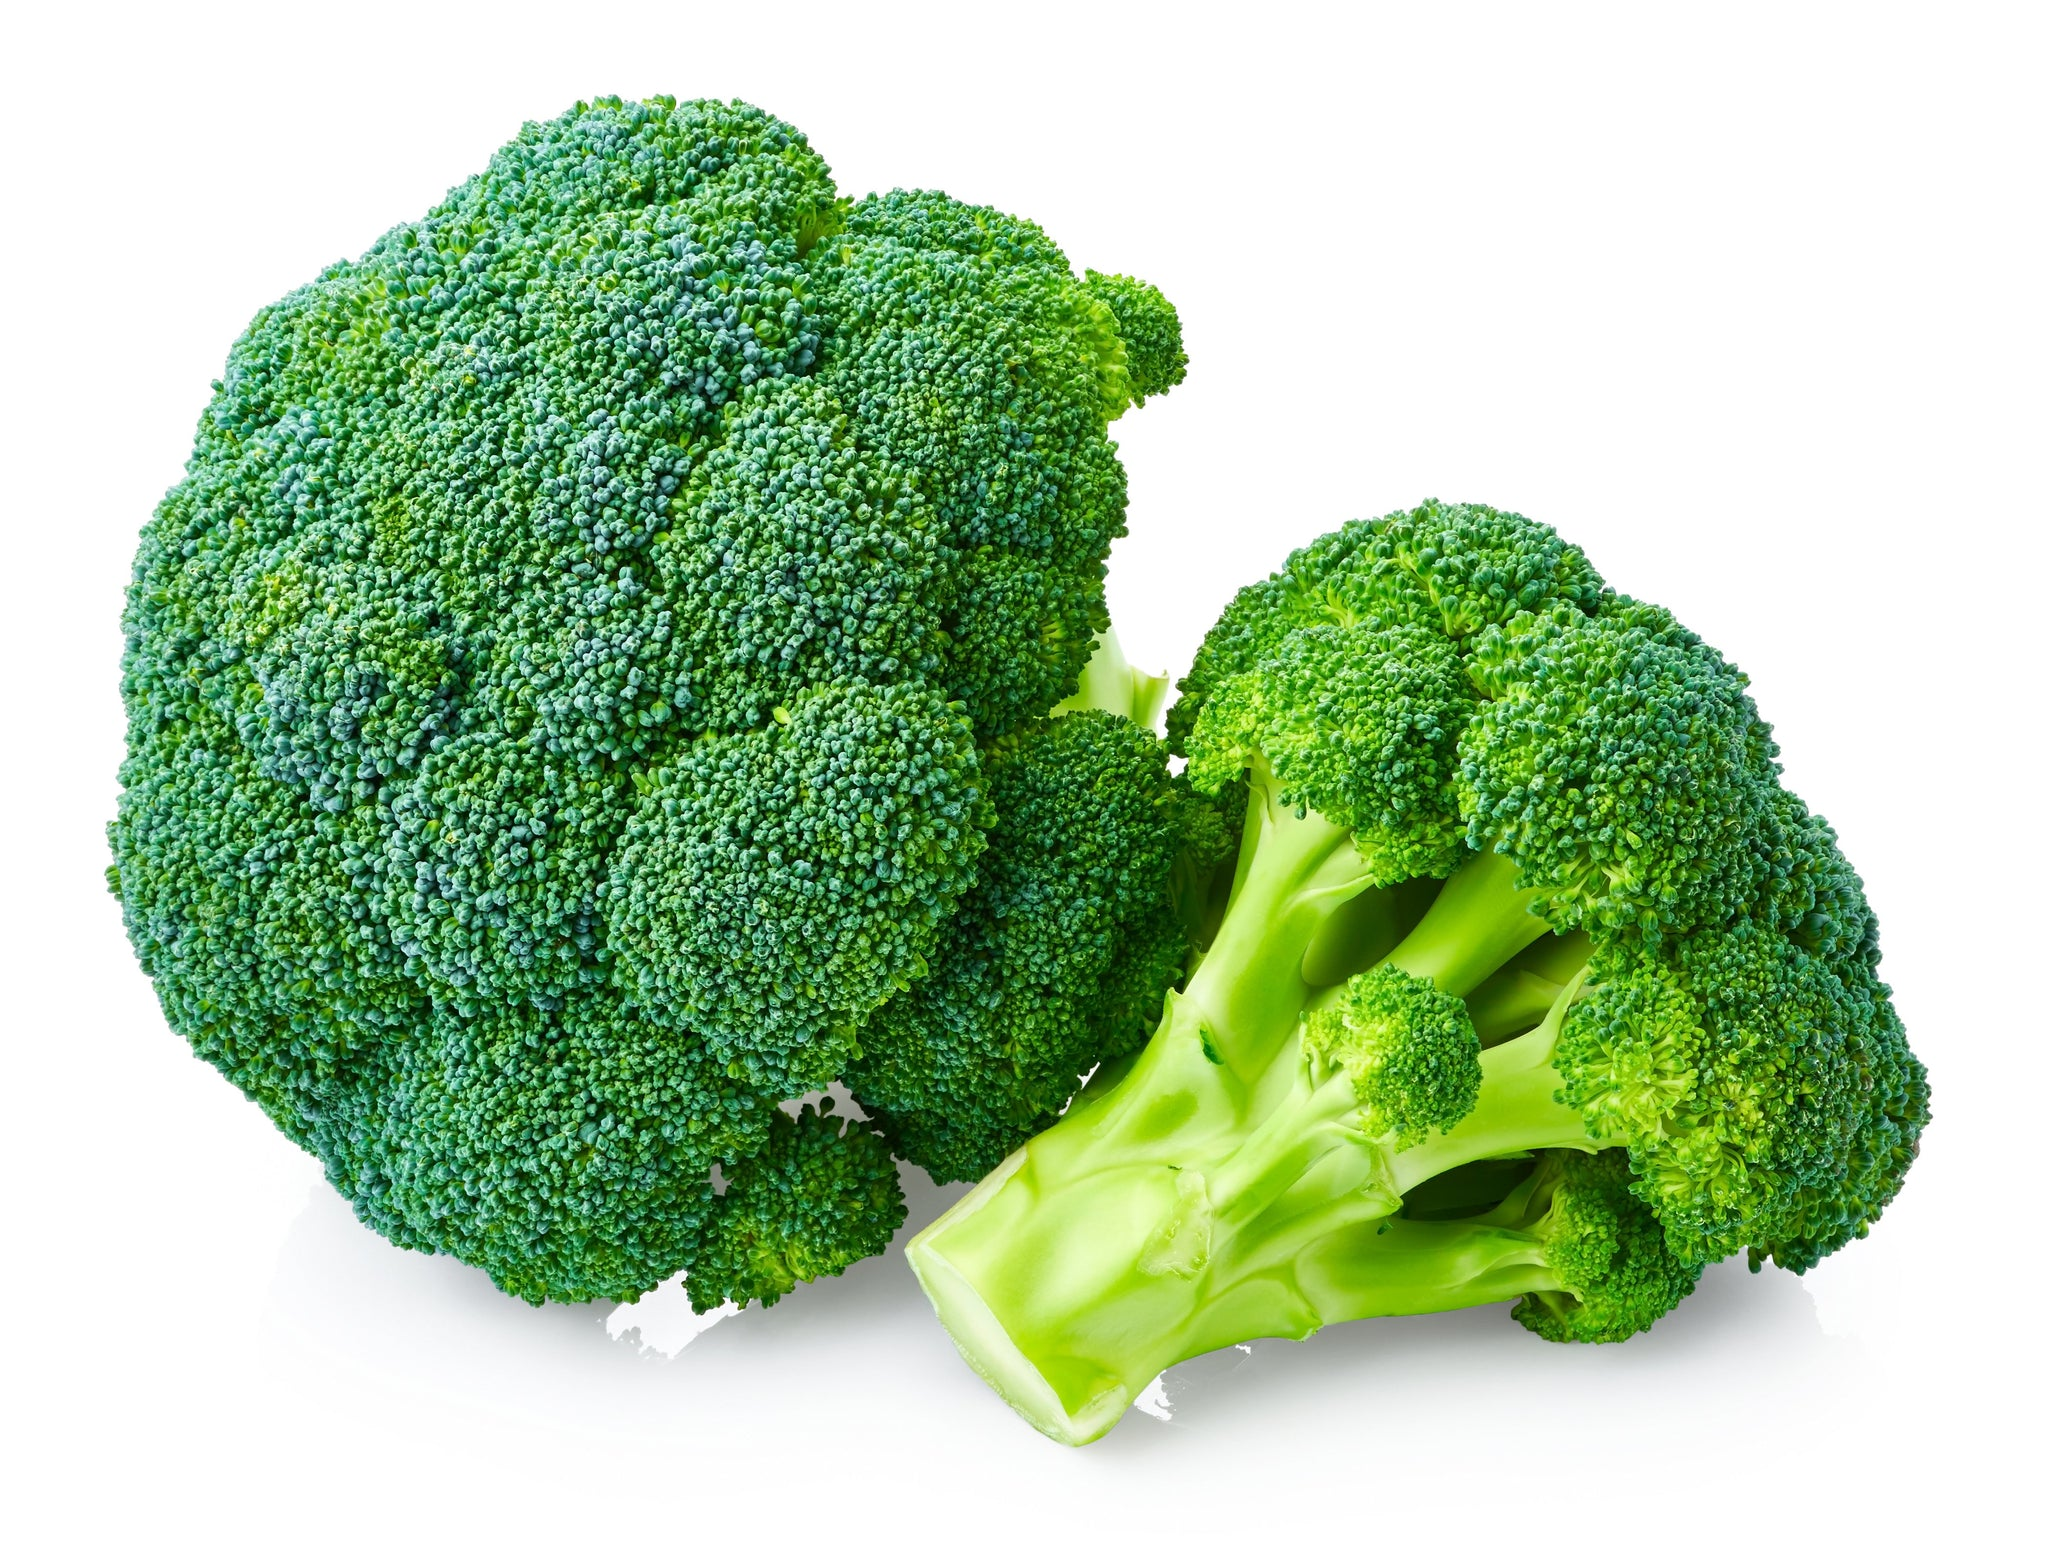 bel>Broccoli, lb